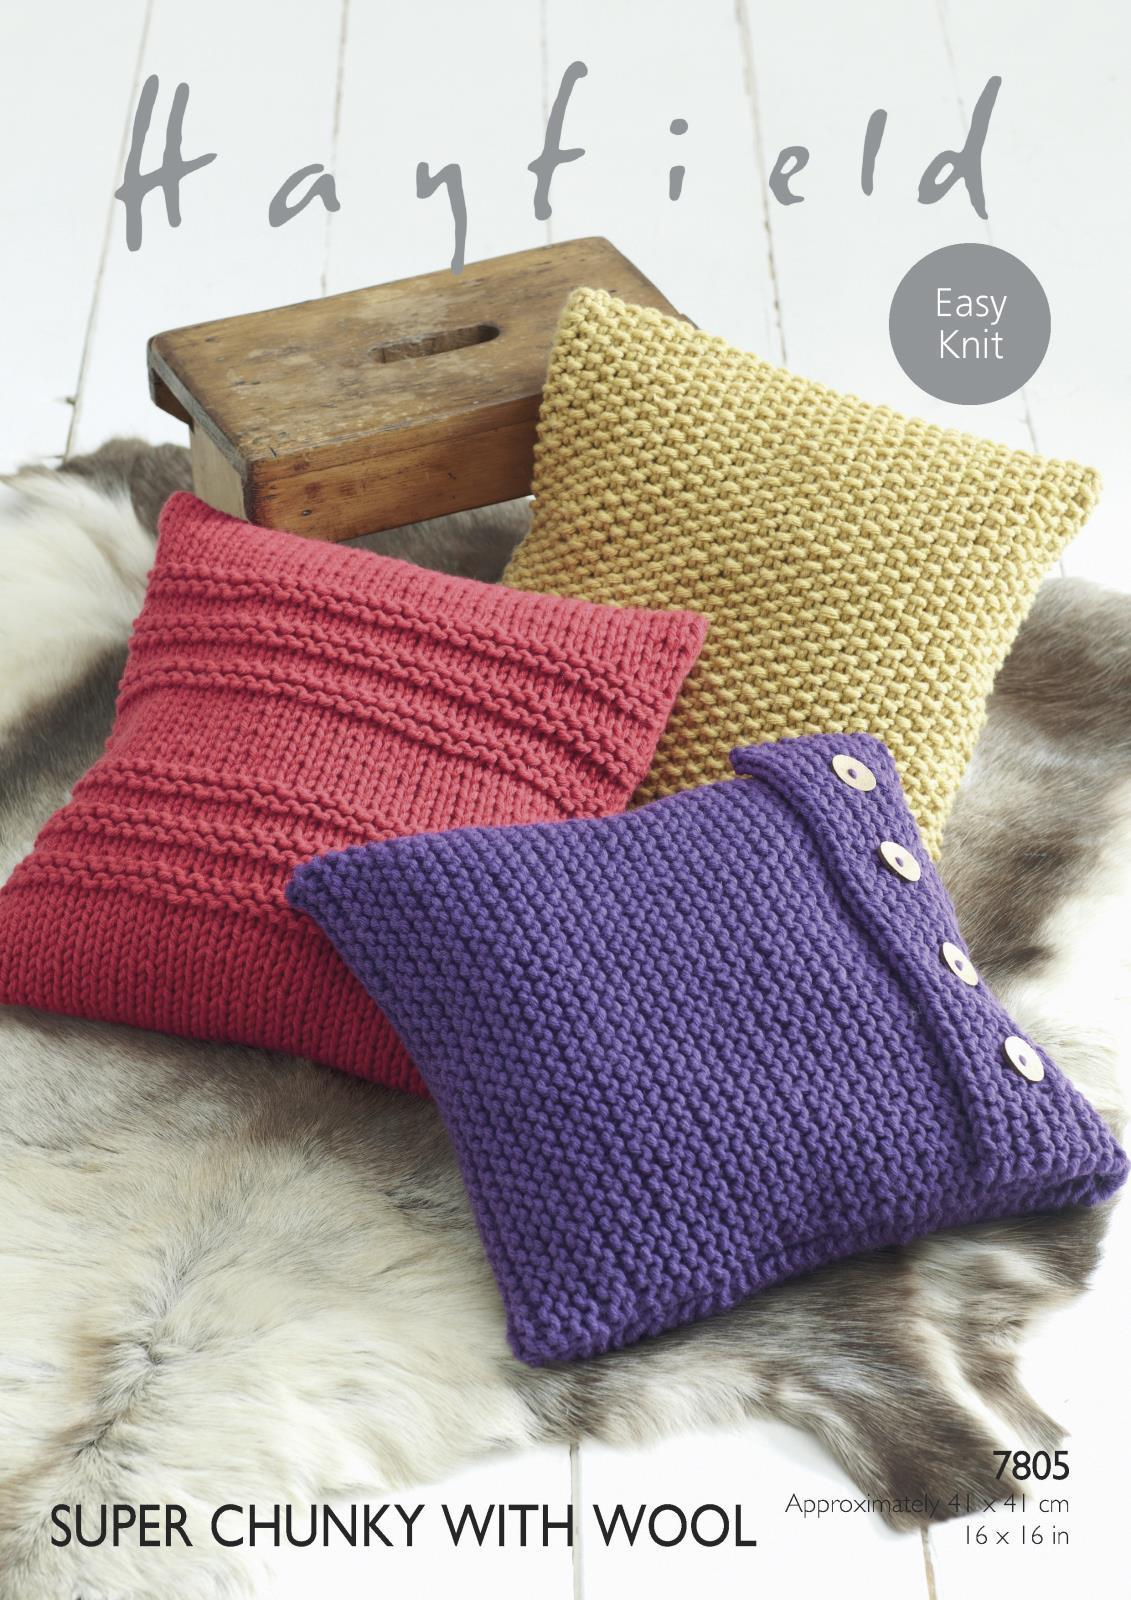 7805 - HAYFIELD SUPER CHUNKY WITH WOOL EASY KNIT CUSHION ...